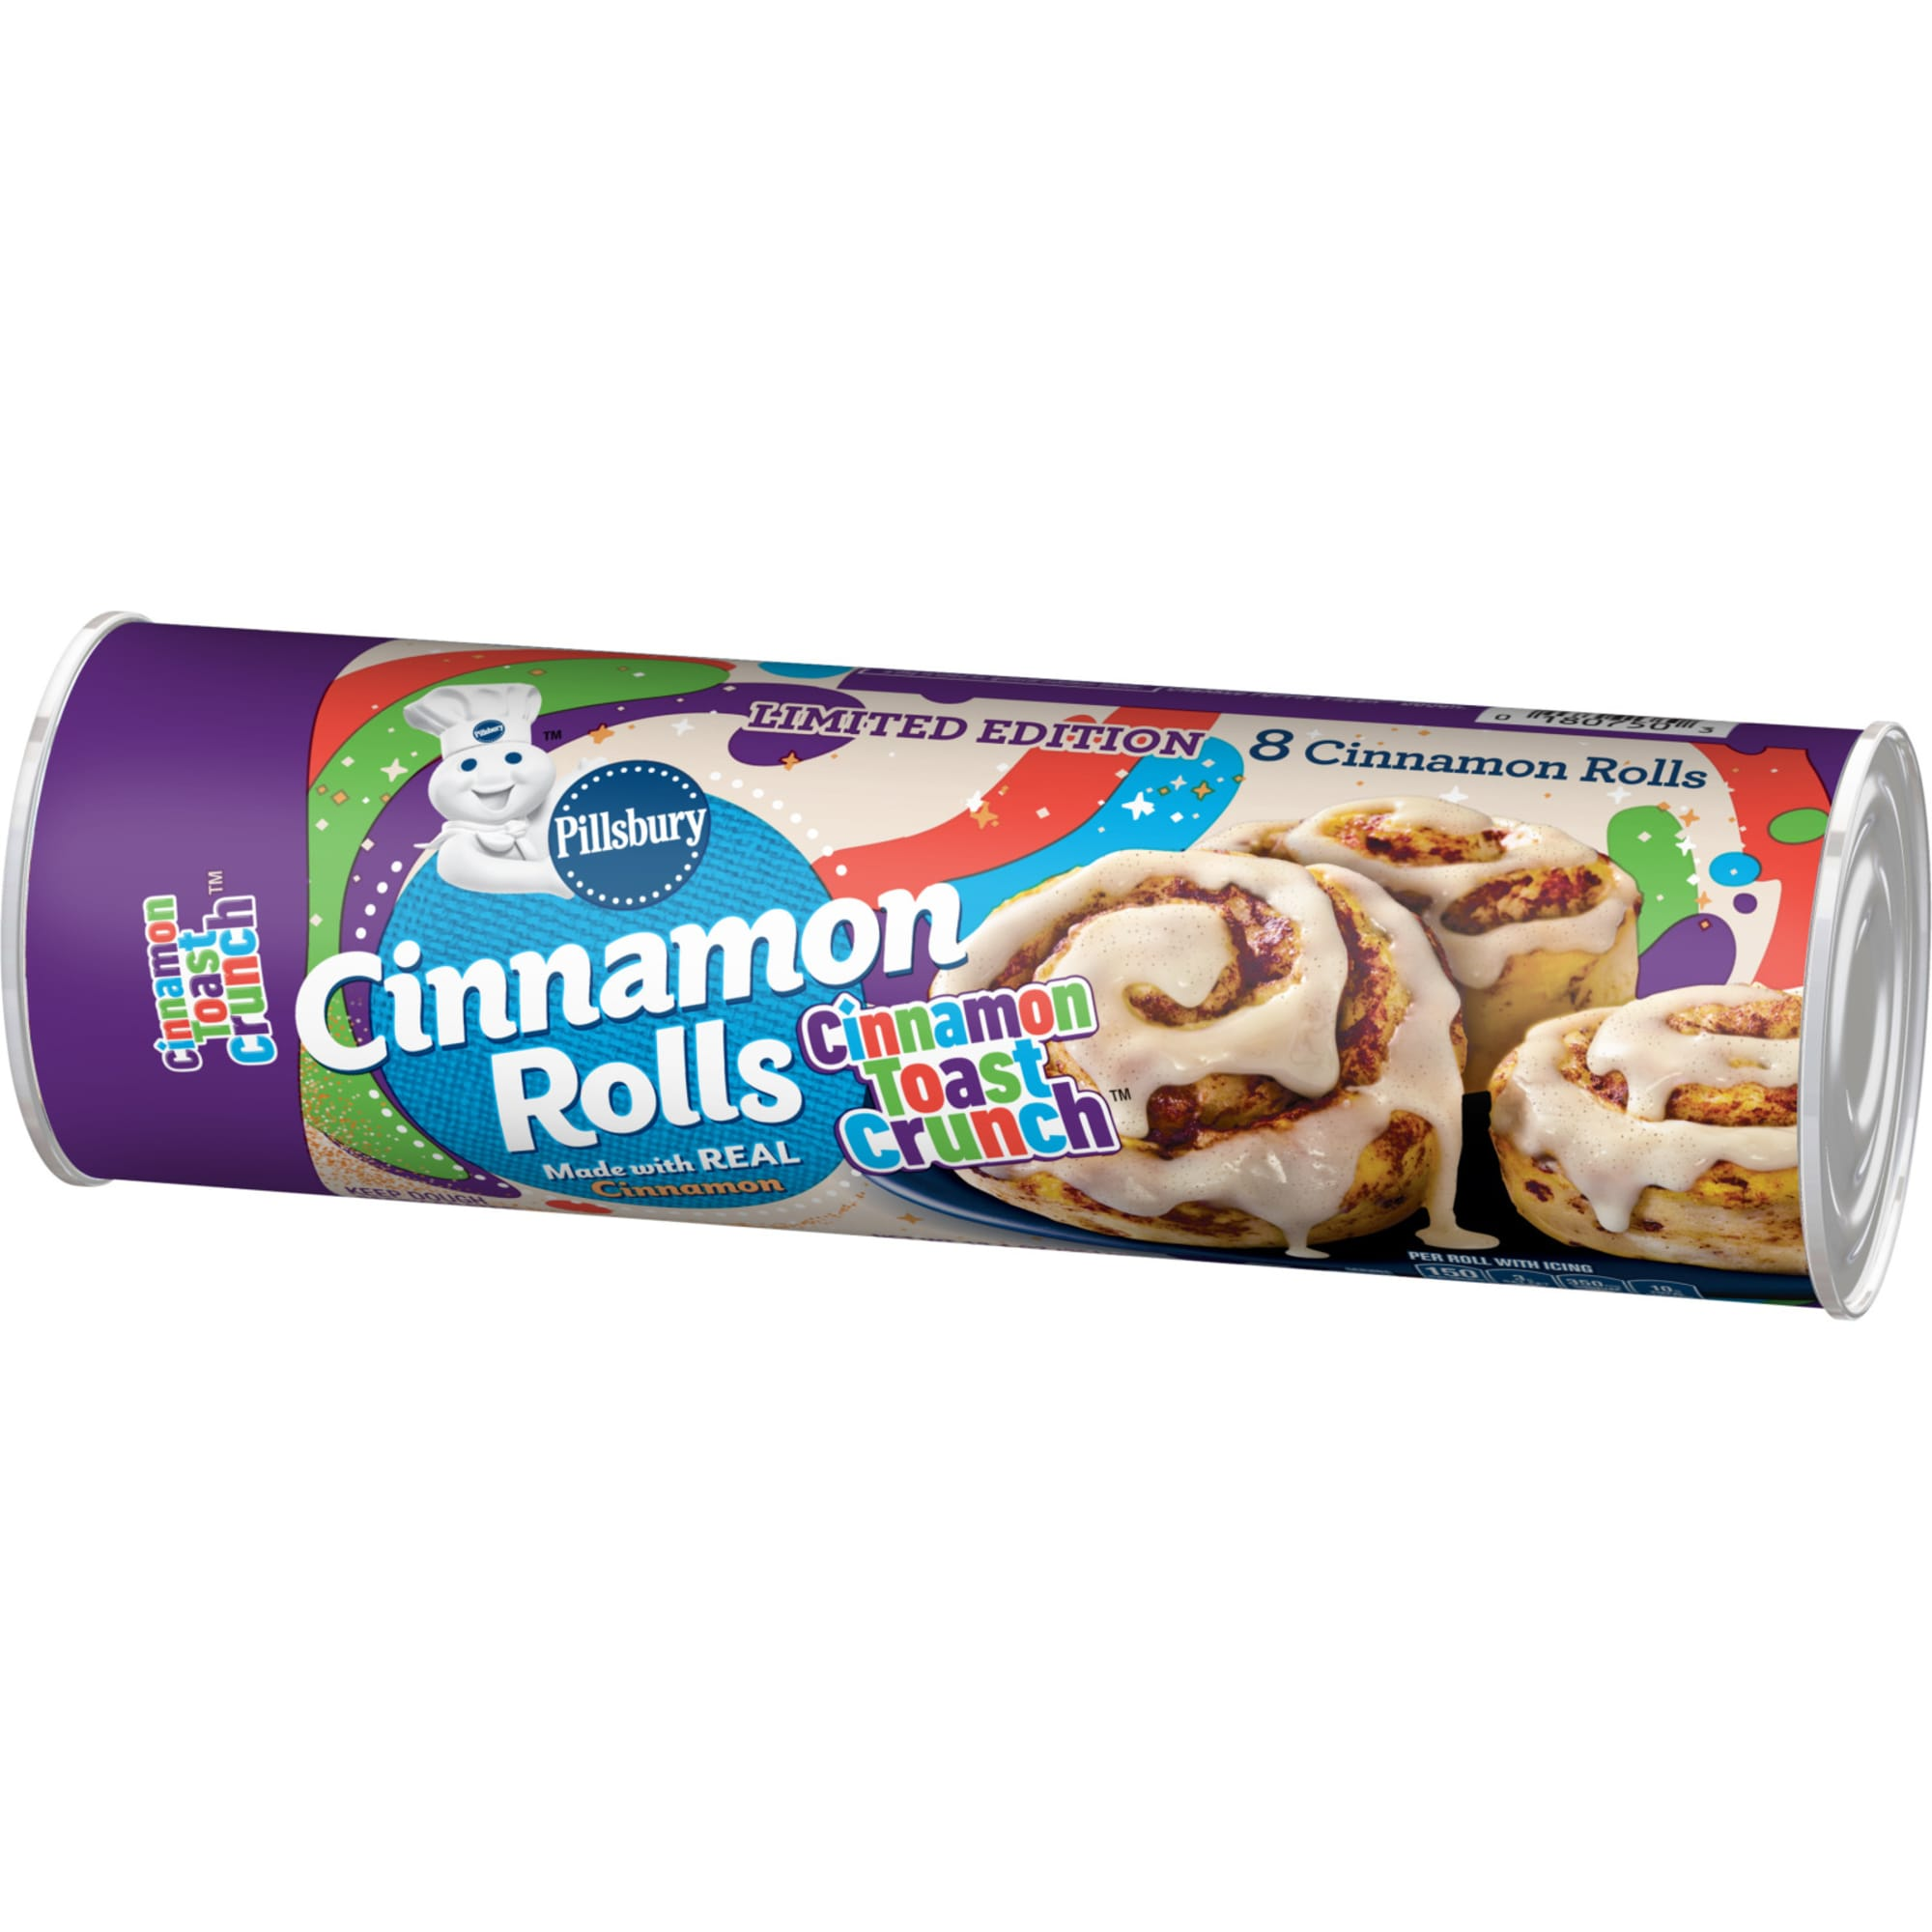 Cinnamon Toast Crunch gives us two new ready to bake offerings